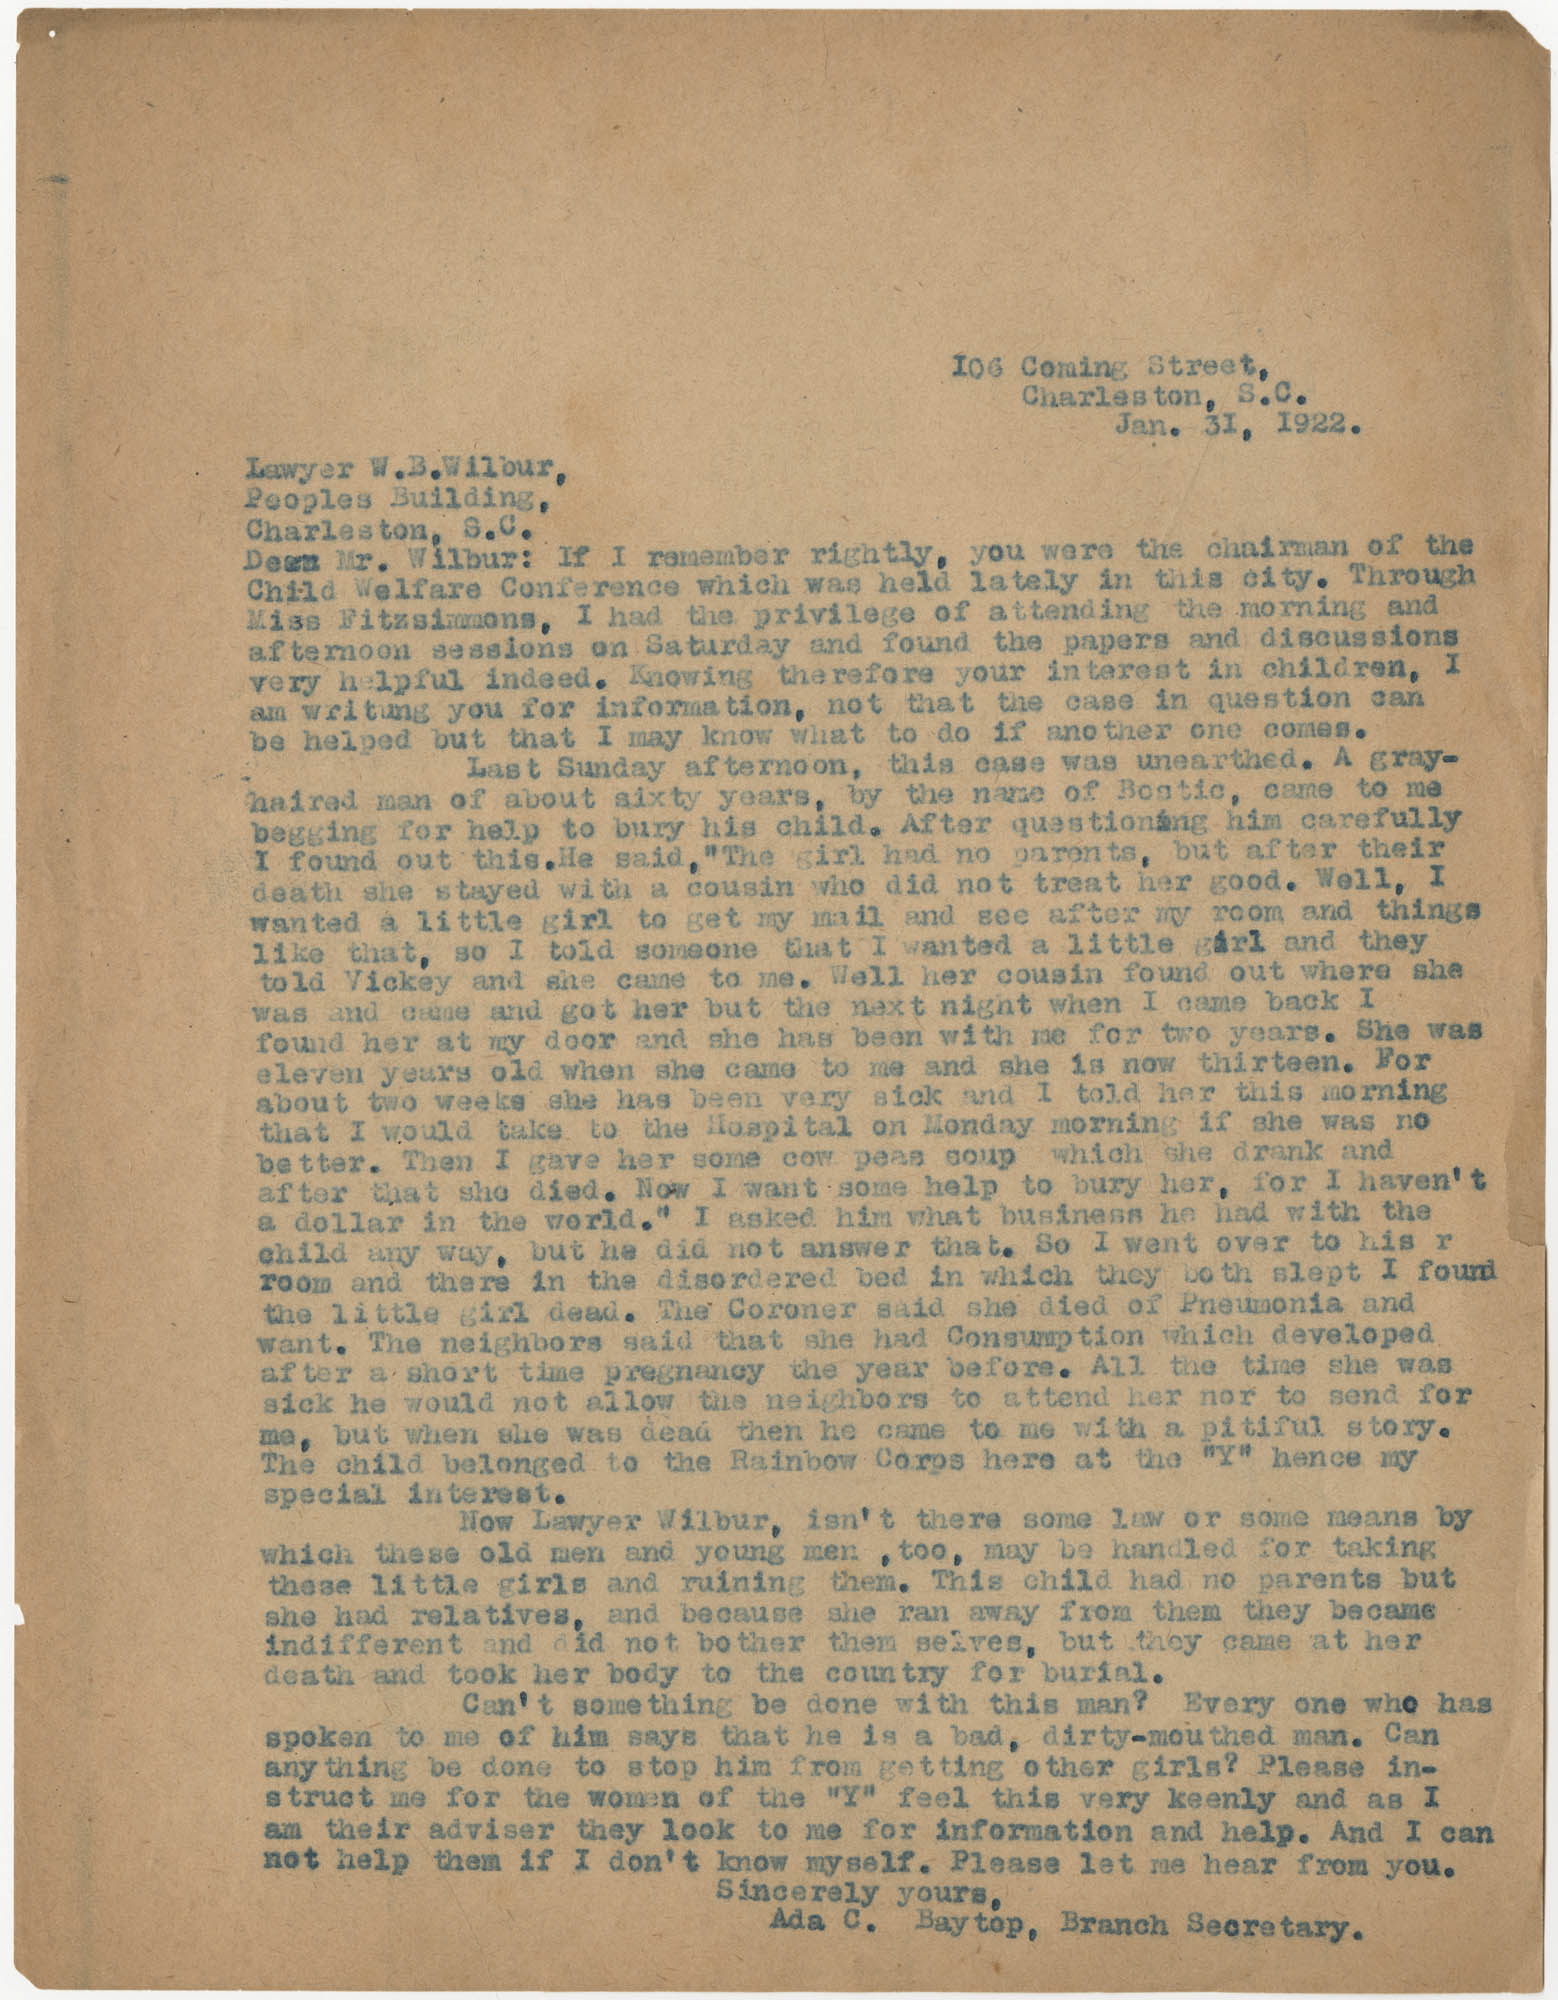 Letter from Ada C. Baytop to W. B. Wilbur, January 31, 1922